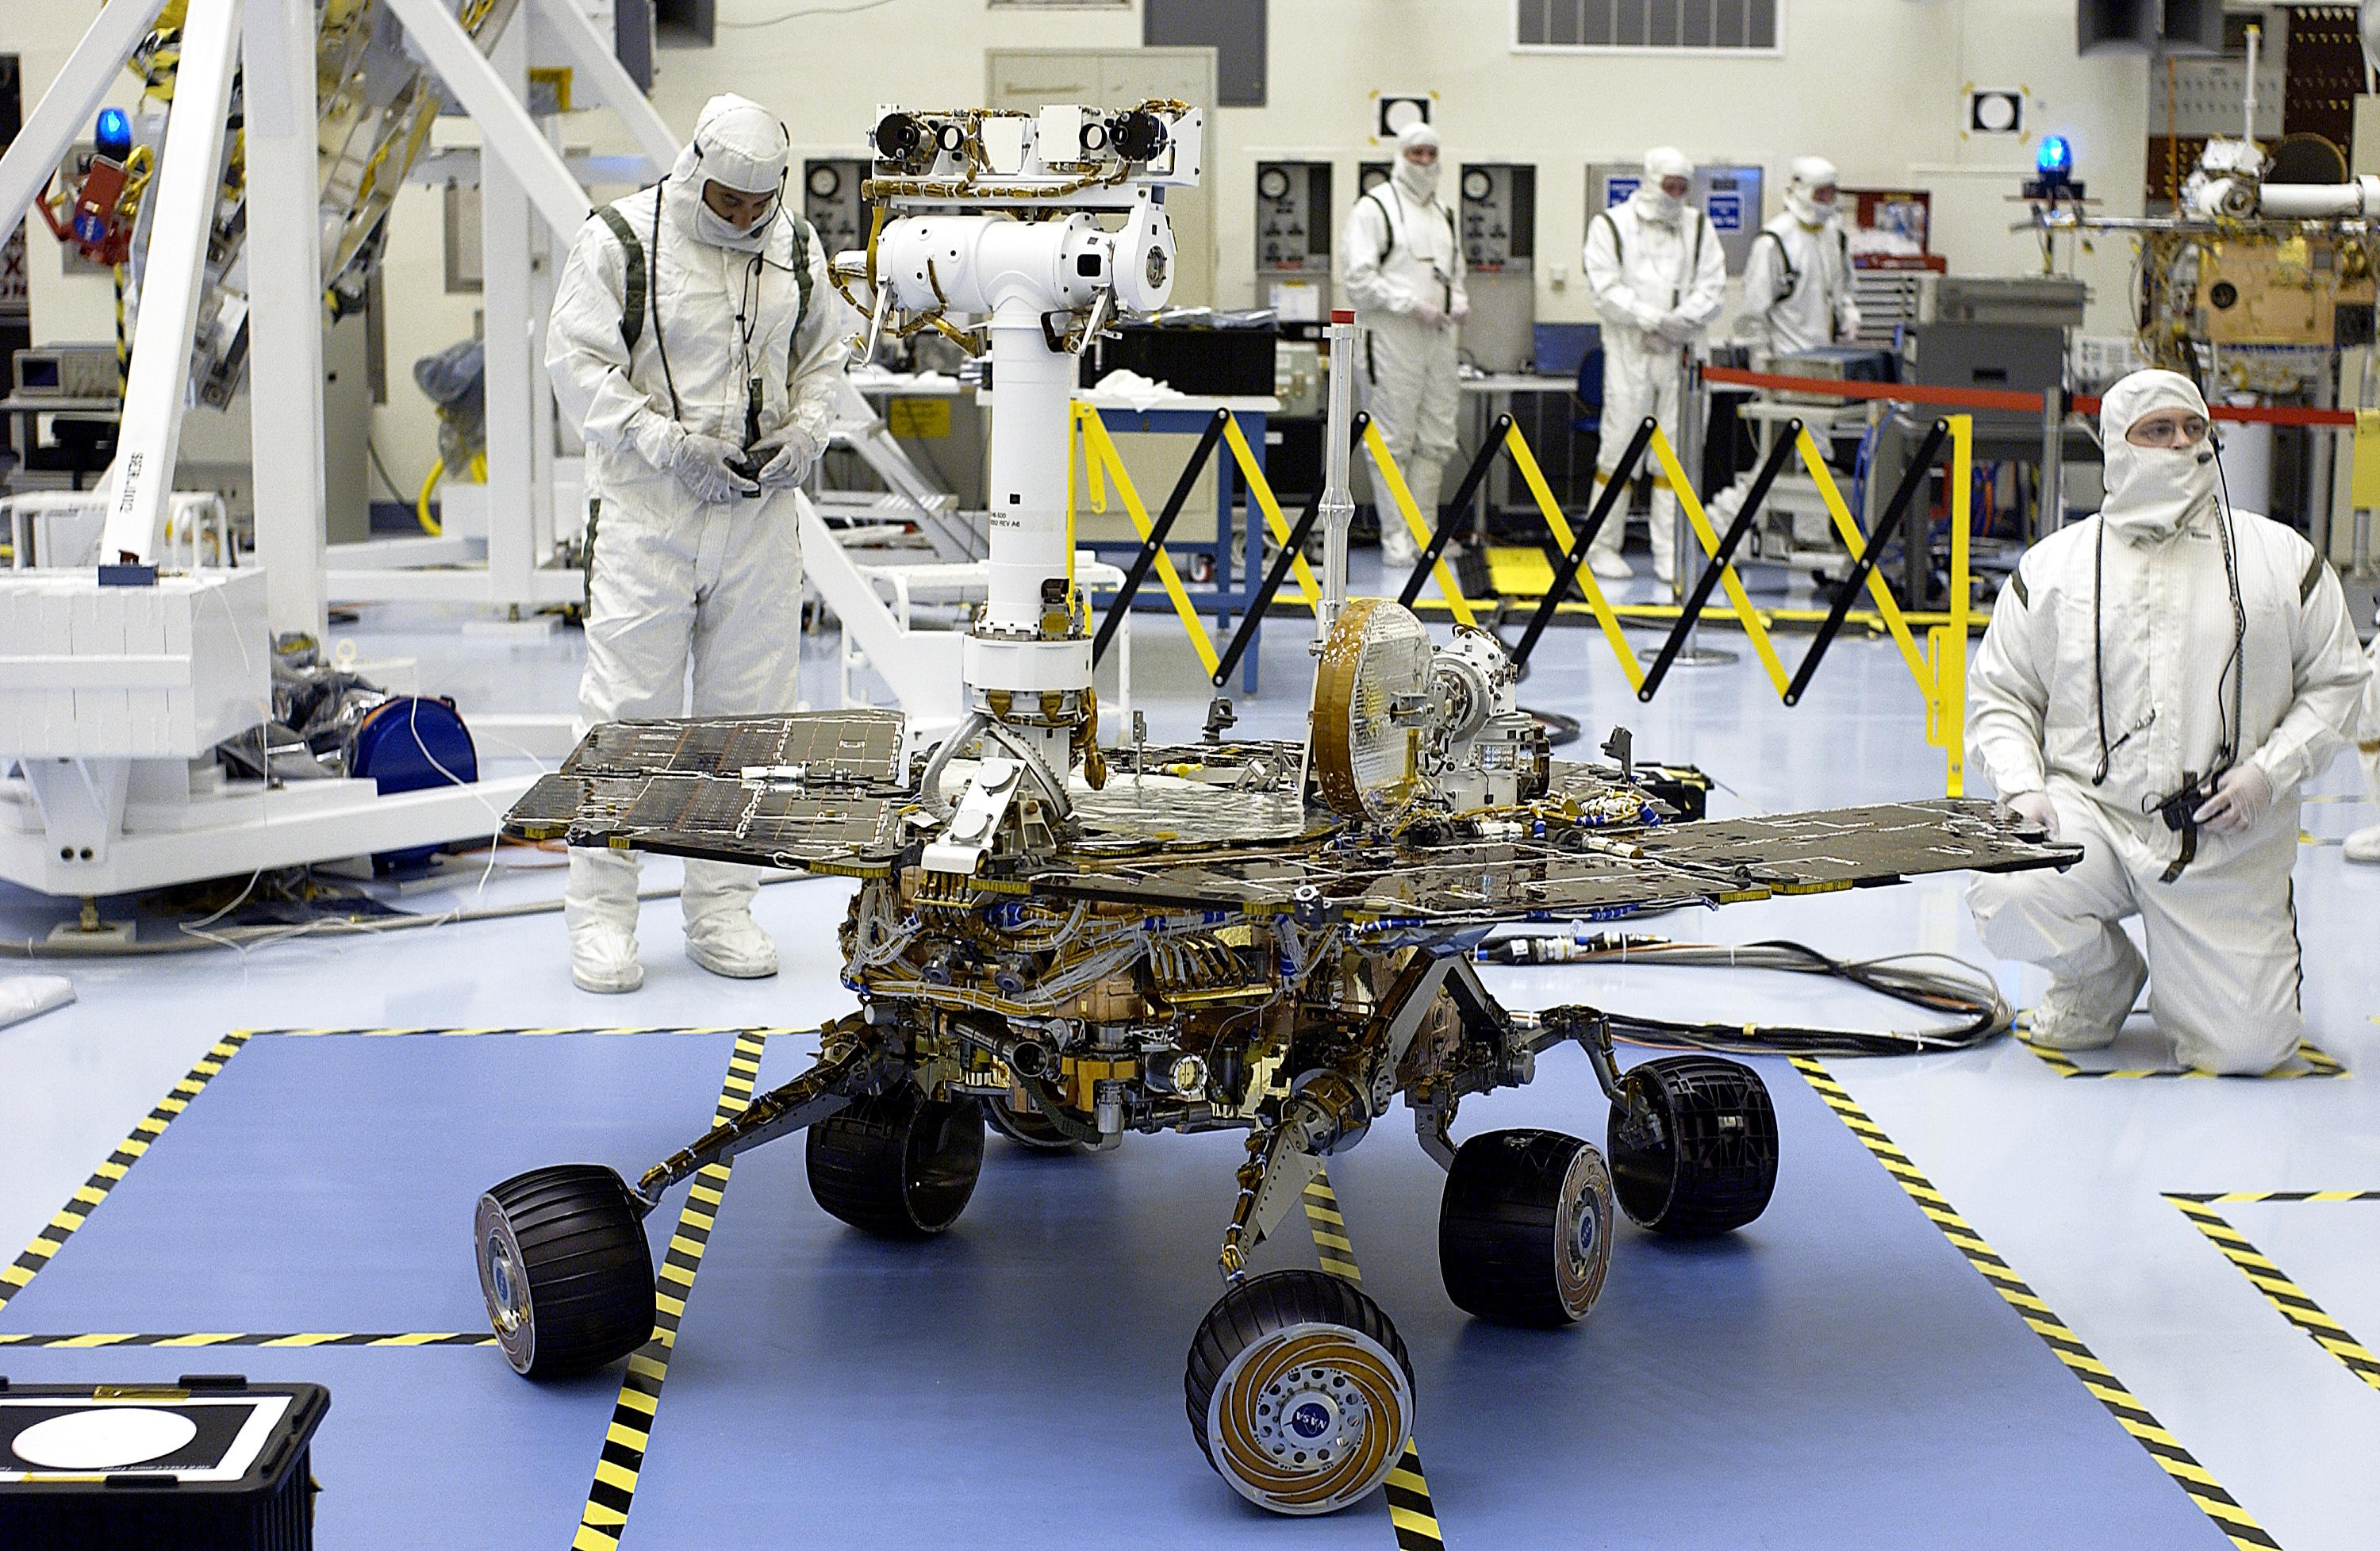 Opportunity (rover)